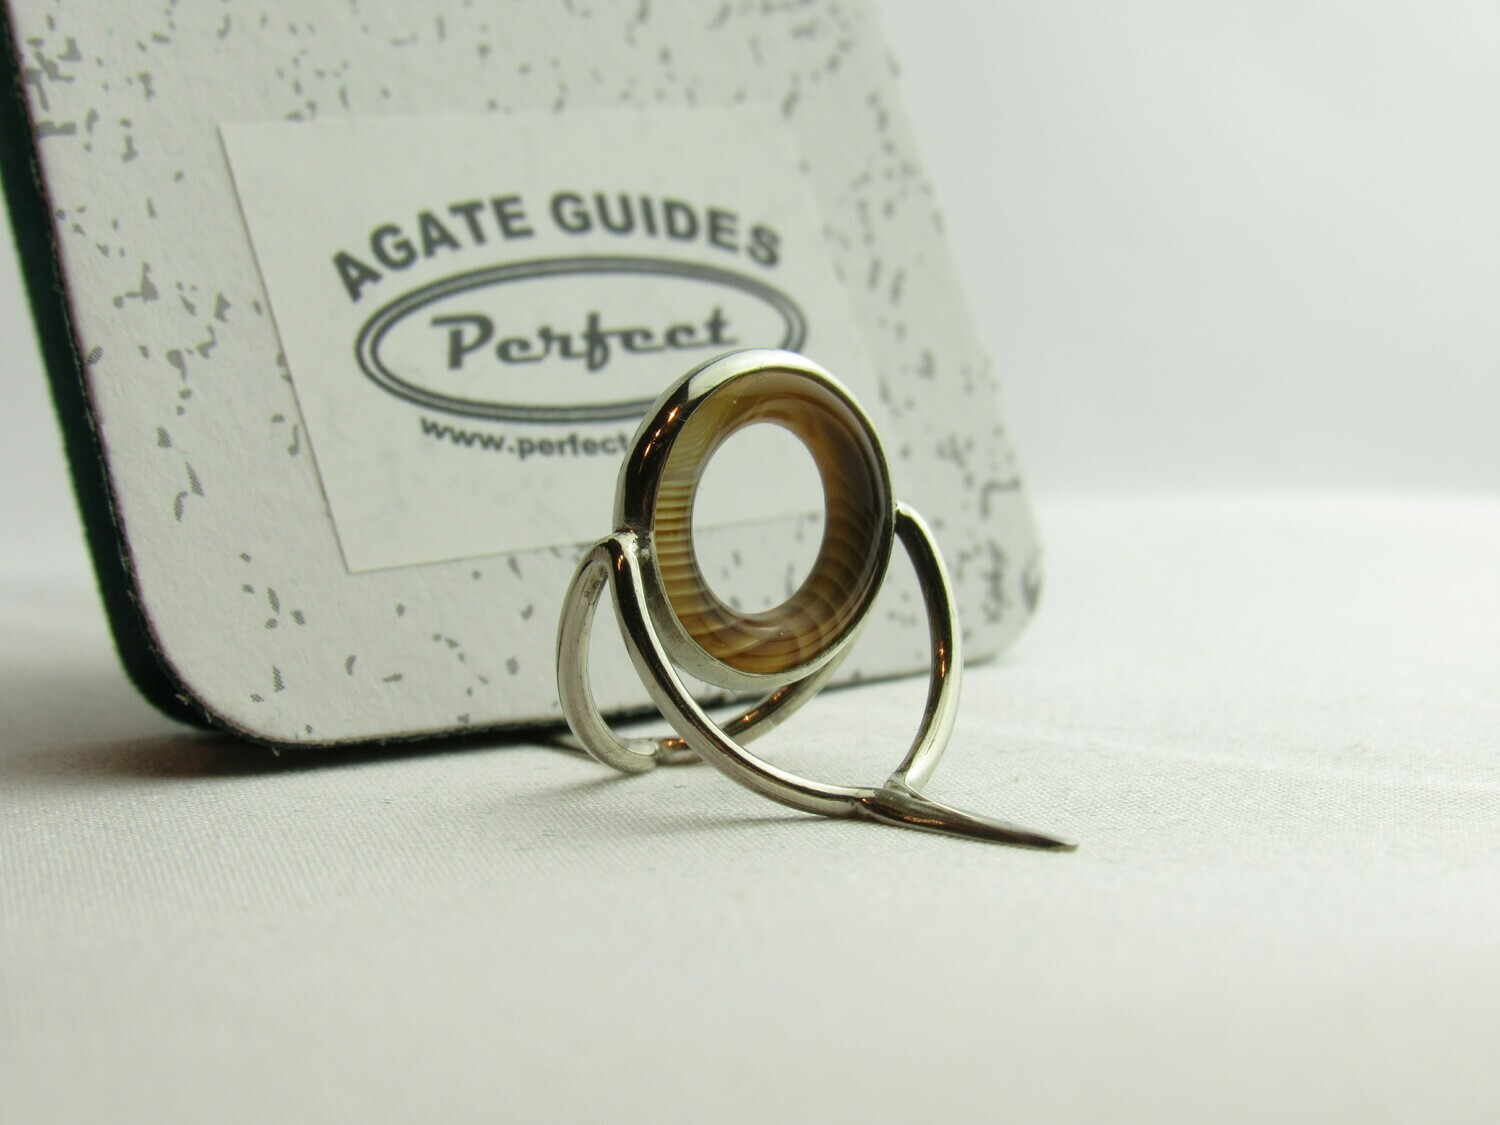 Agate Perfect Stripping Guide Ring 12mm brown coffe milk banded